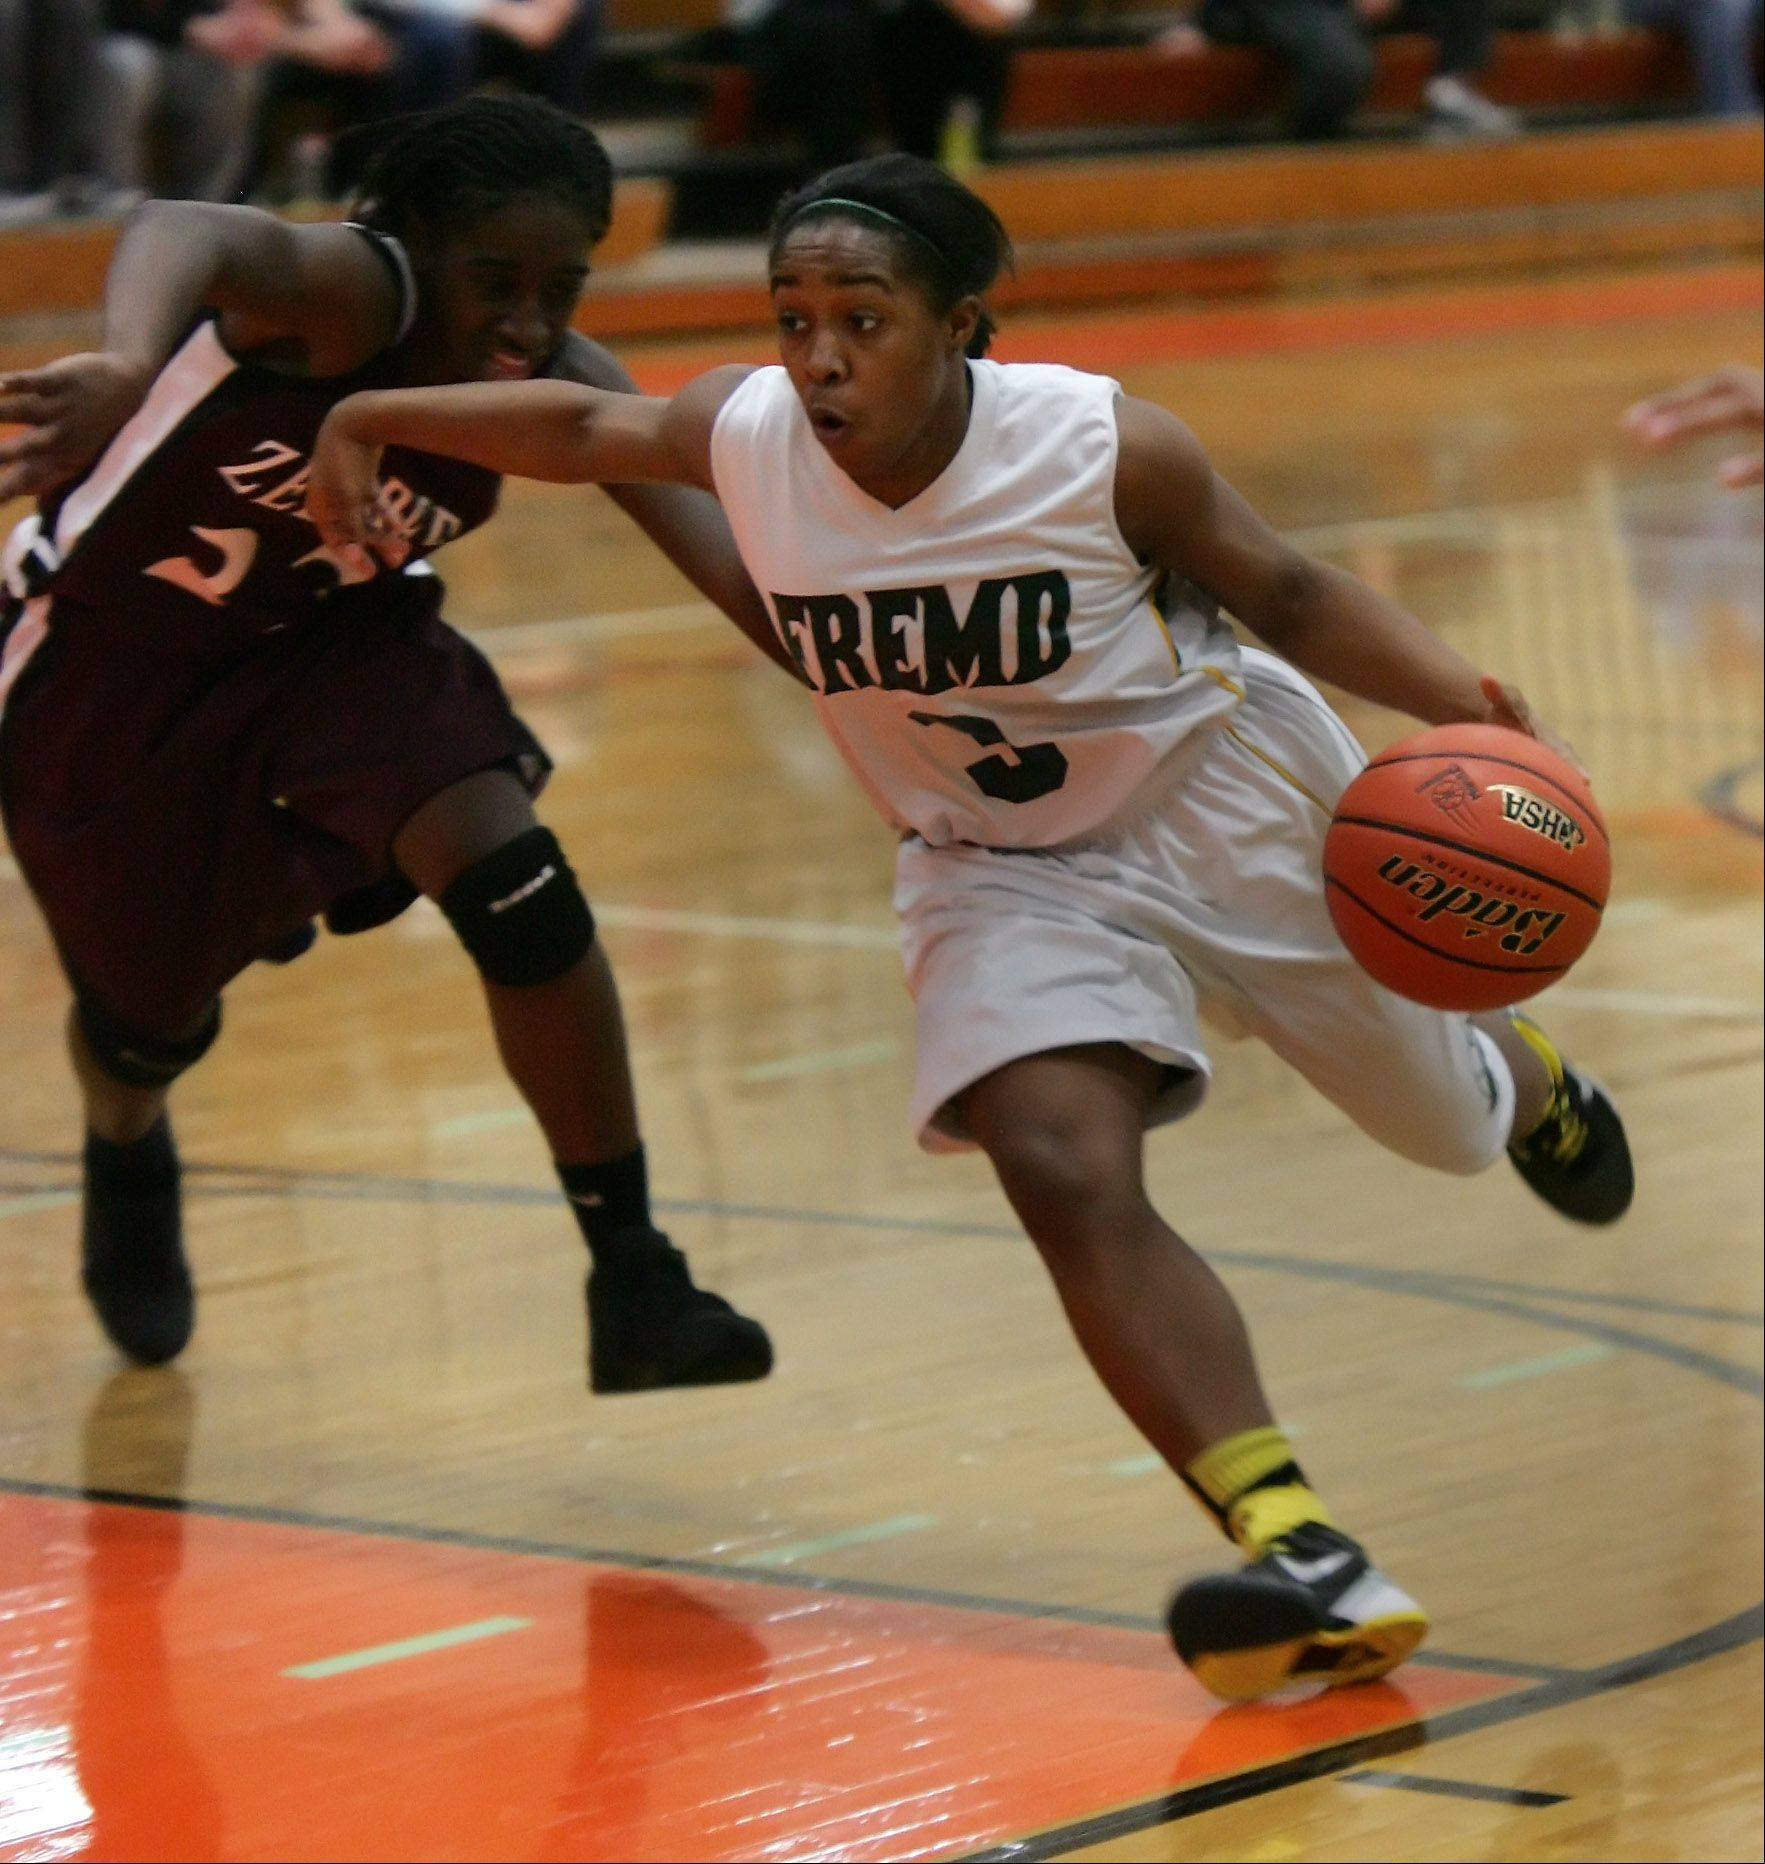 Fremd guard Brianna Lewis drives around Zion-Benton player T.T. Maggett during the girls basketball game between Fremd and Zion-Benton in the Class 4A sectional semifinals at Libertyville High School Monday.